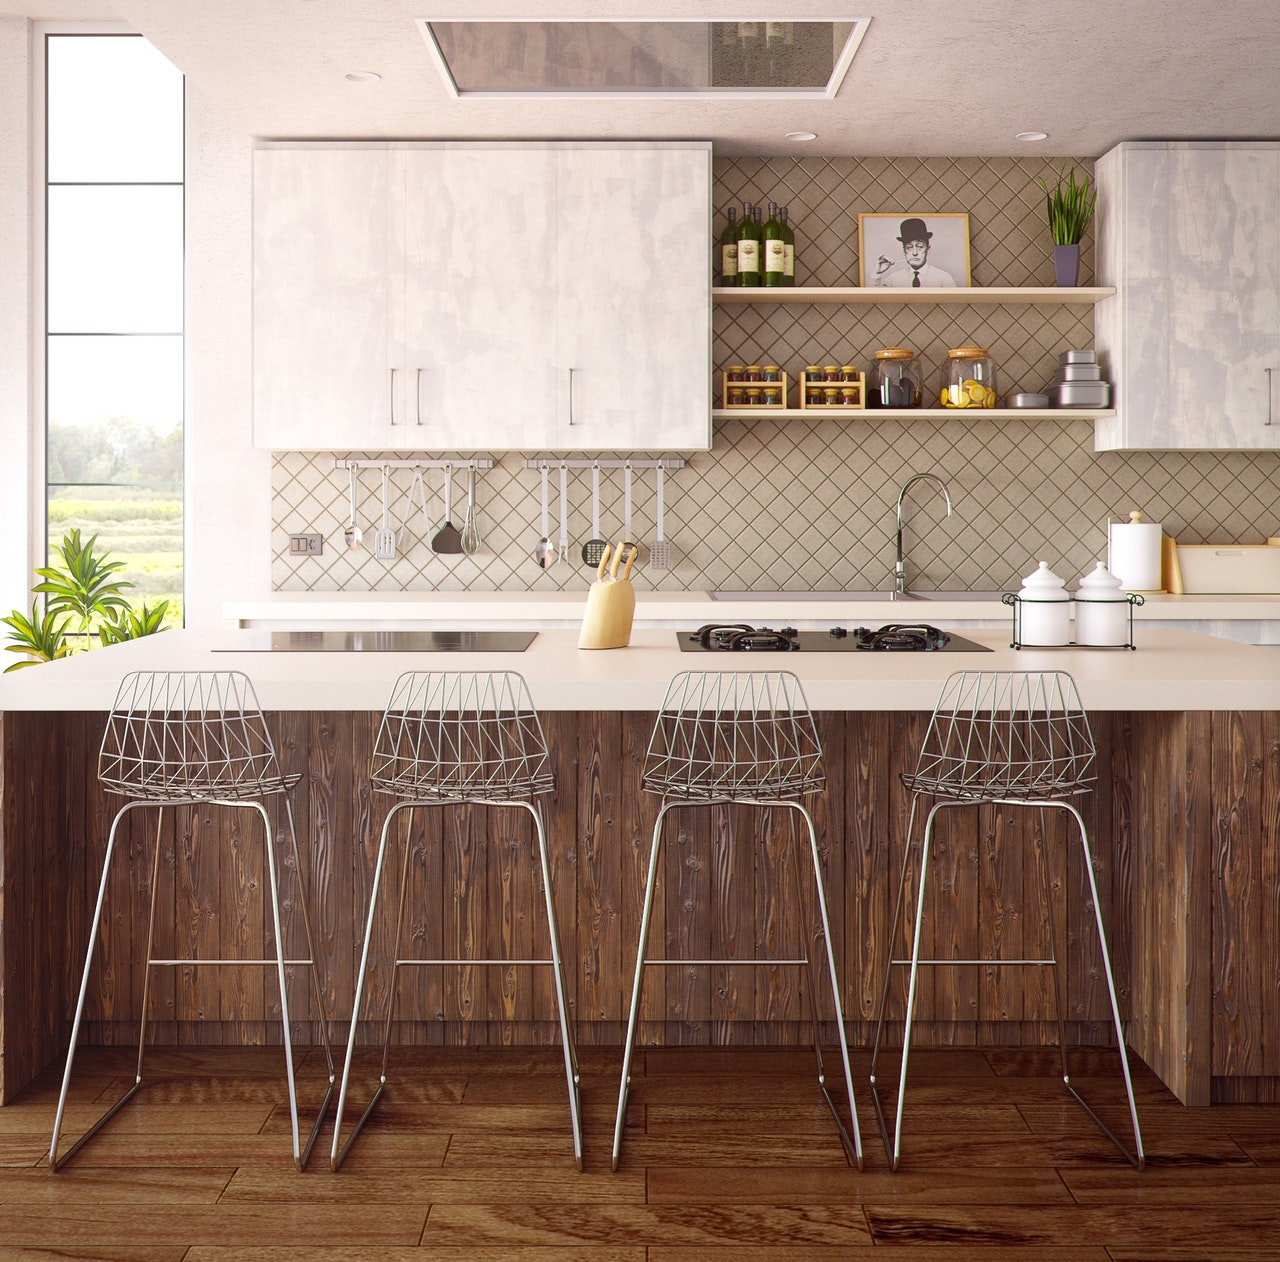 Stuffy To Spacious: Transforming A Compact Kitchen